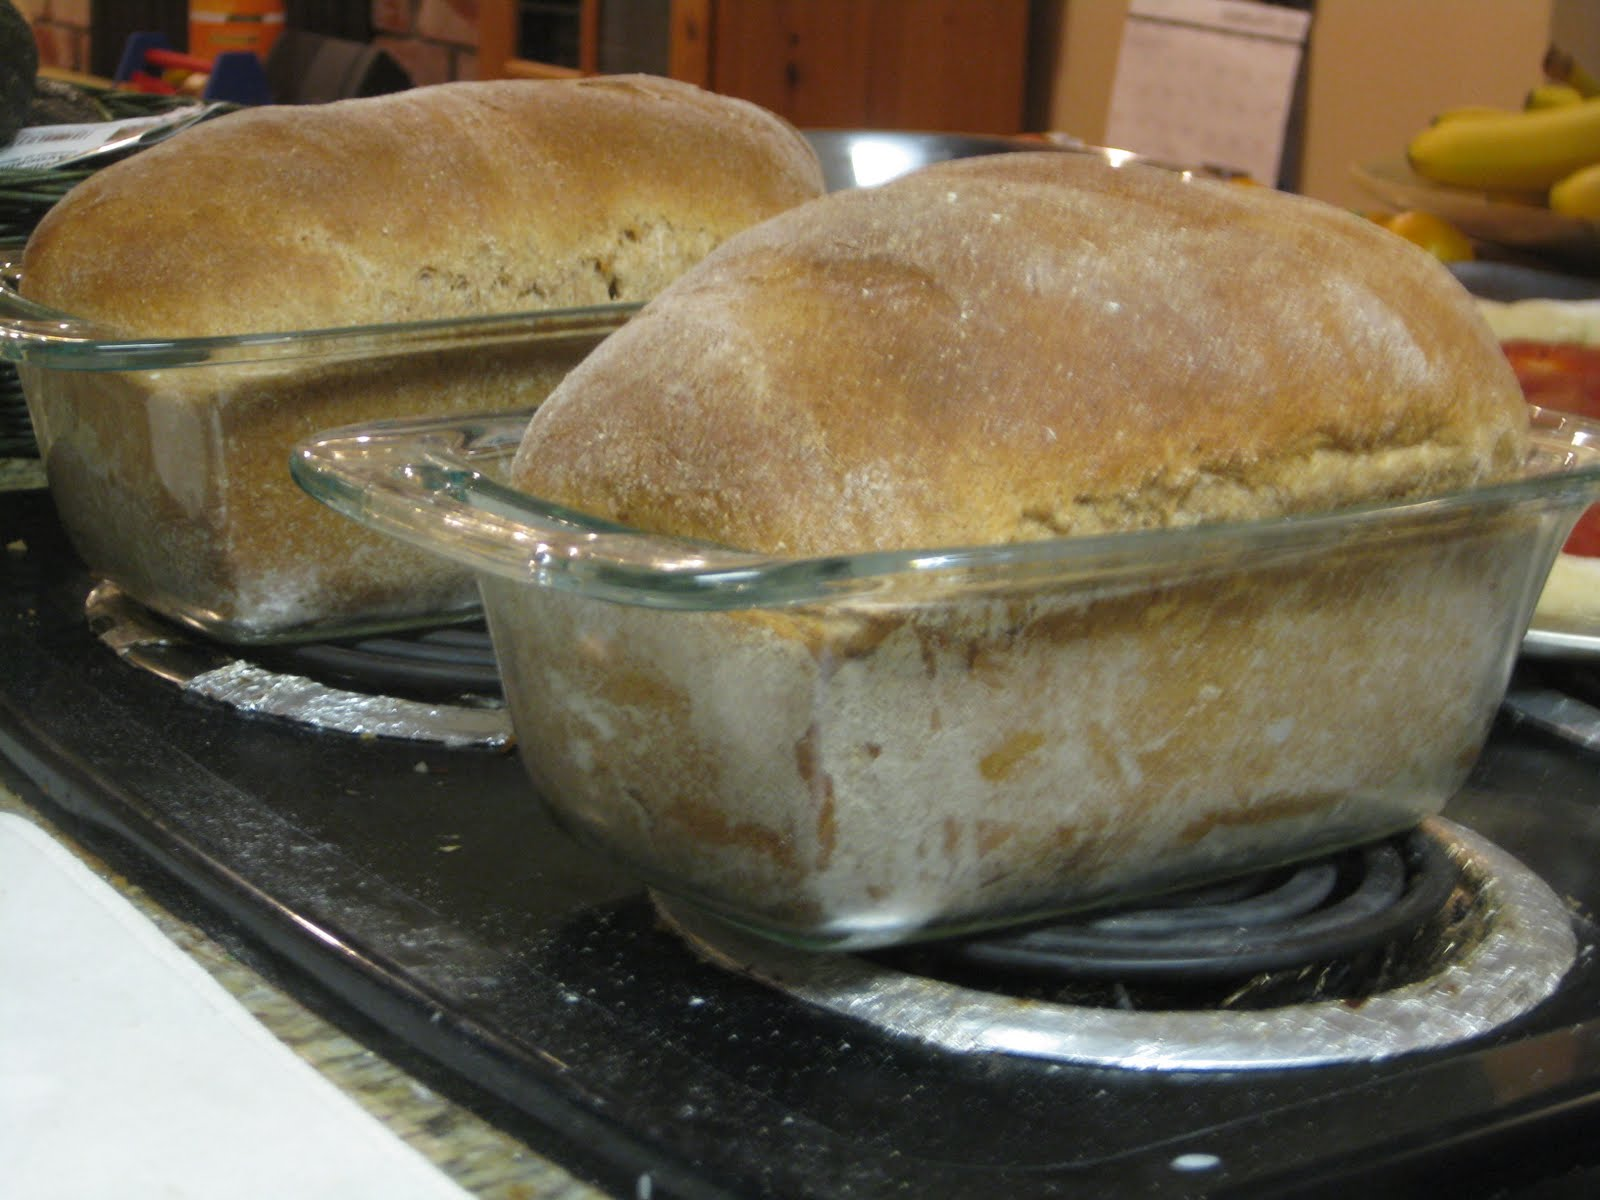 At first, I stored my bread in plastic bags that I'd kept from store-bought bread. One of the benefits of homemade over store-bought is that you can use ...